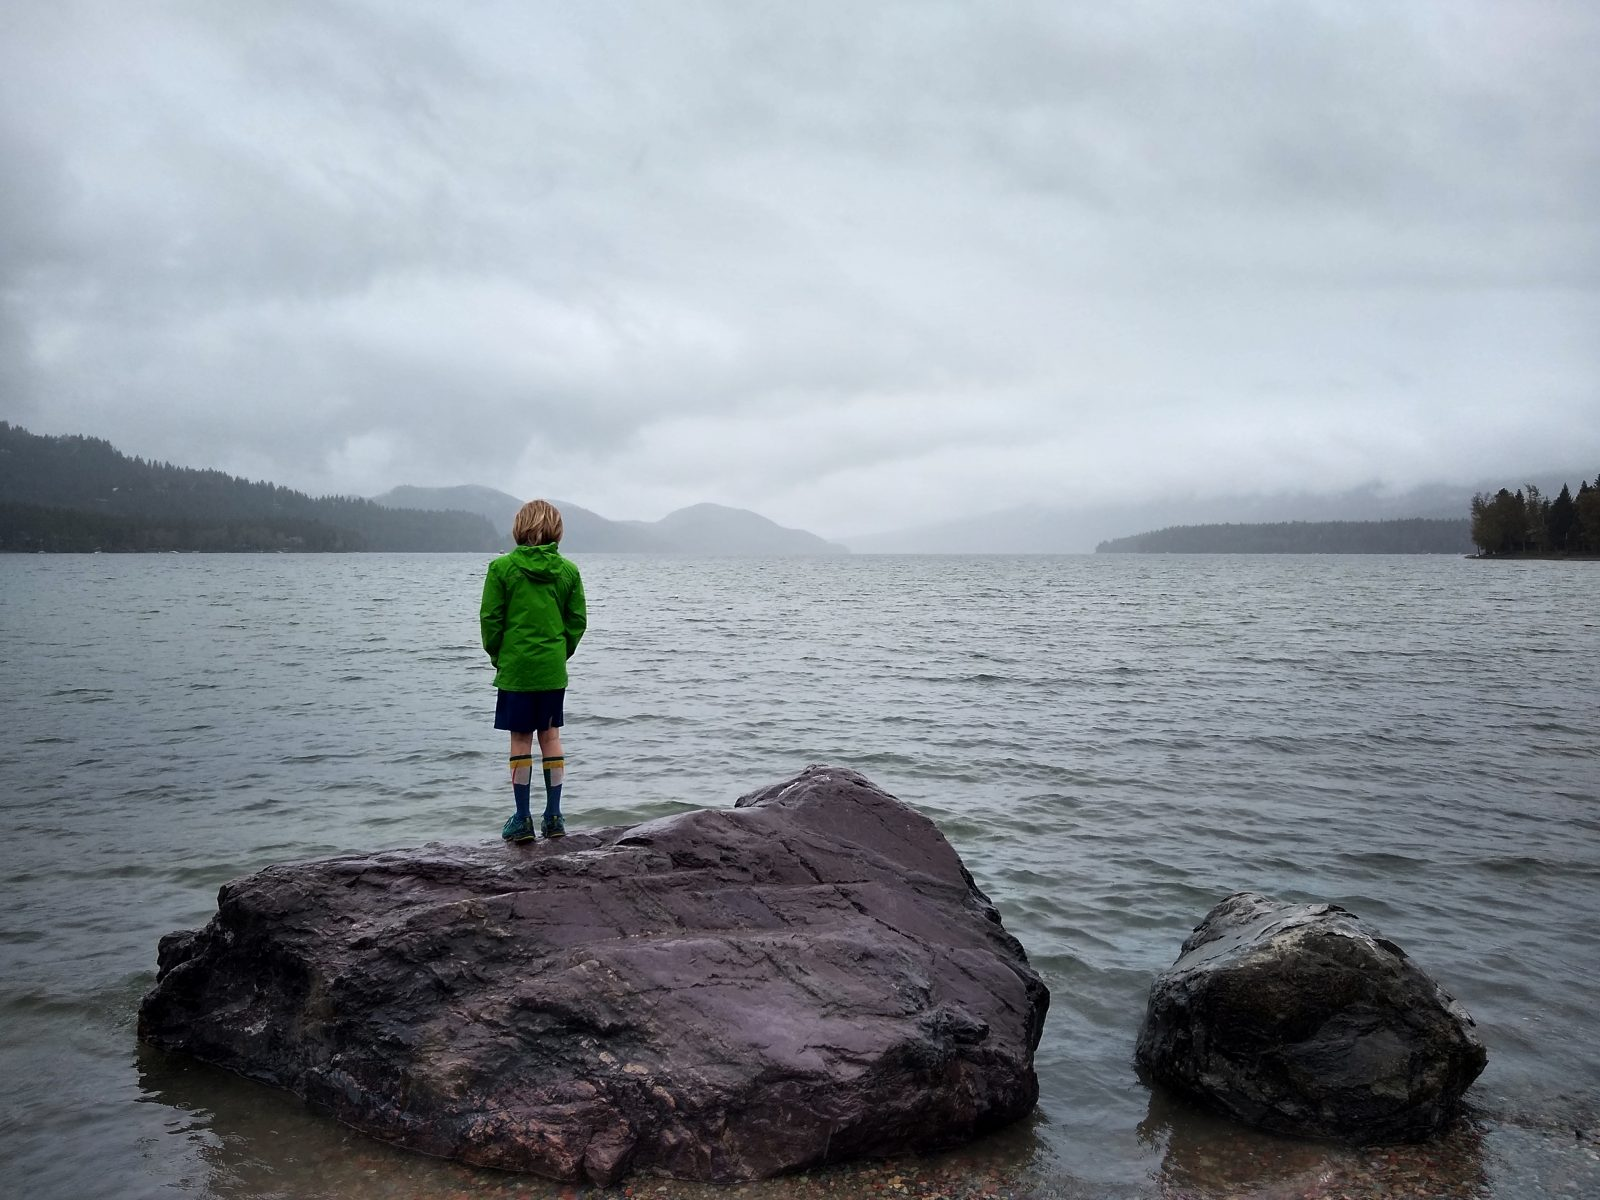 Whitefish Lake - May 12, 2020